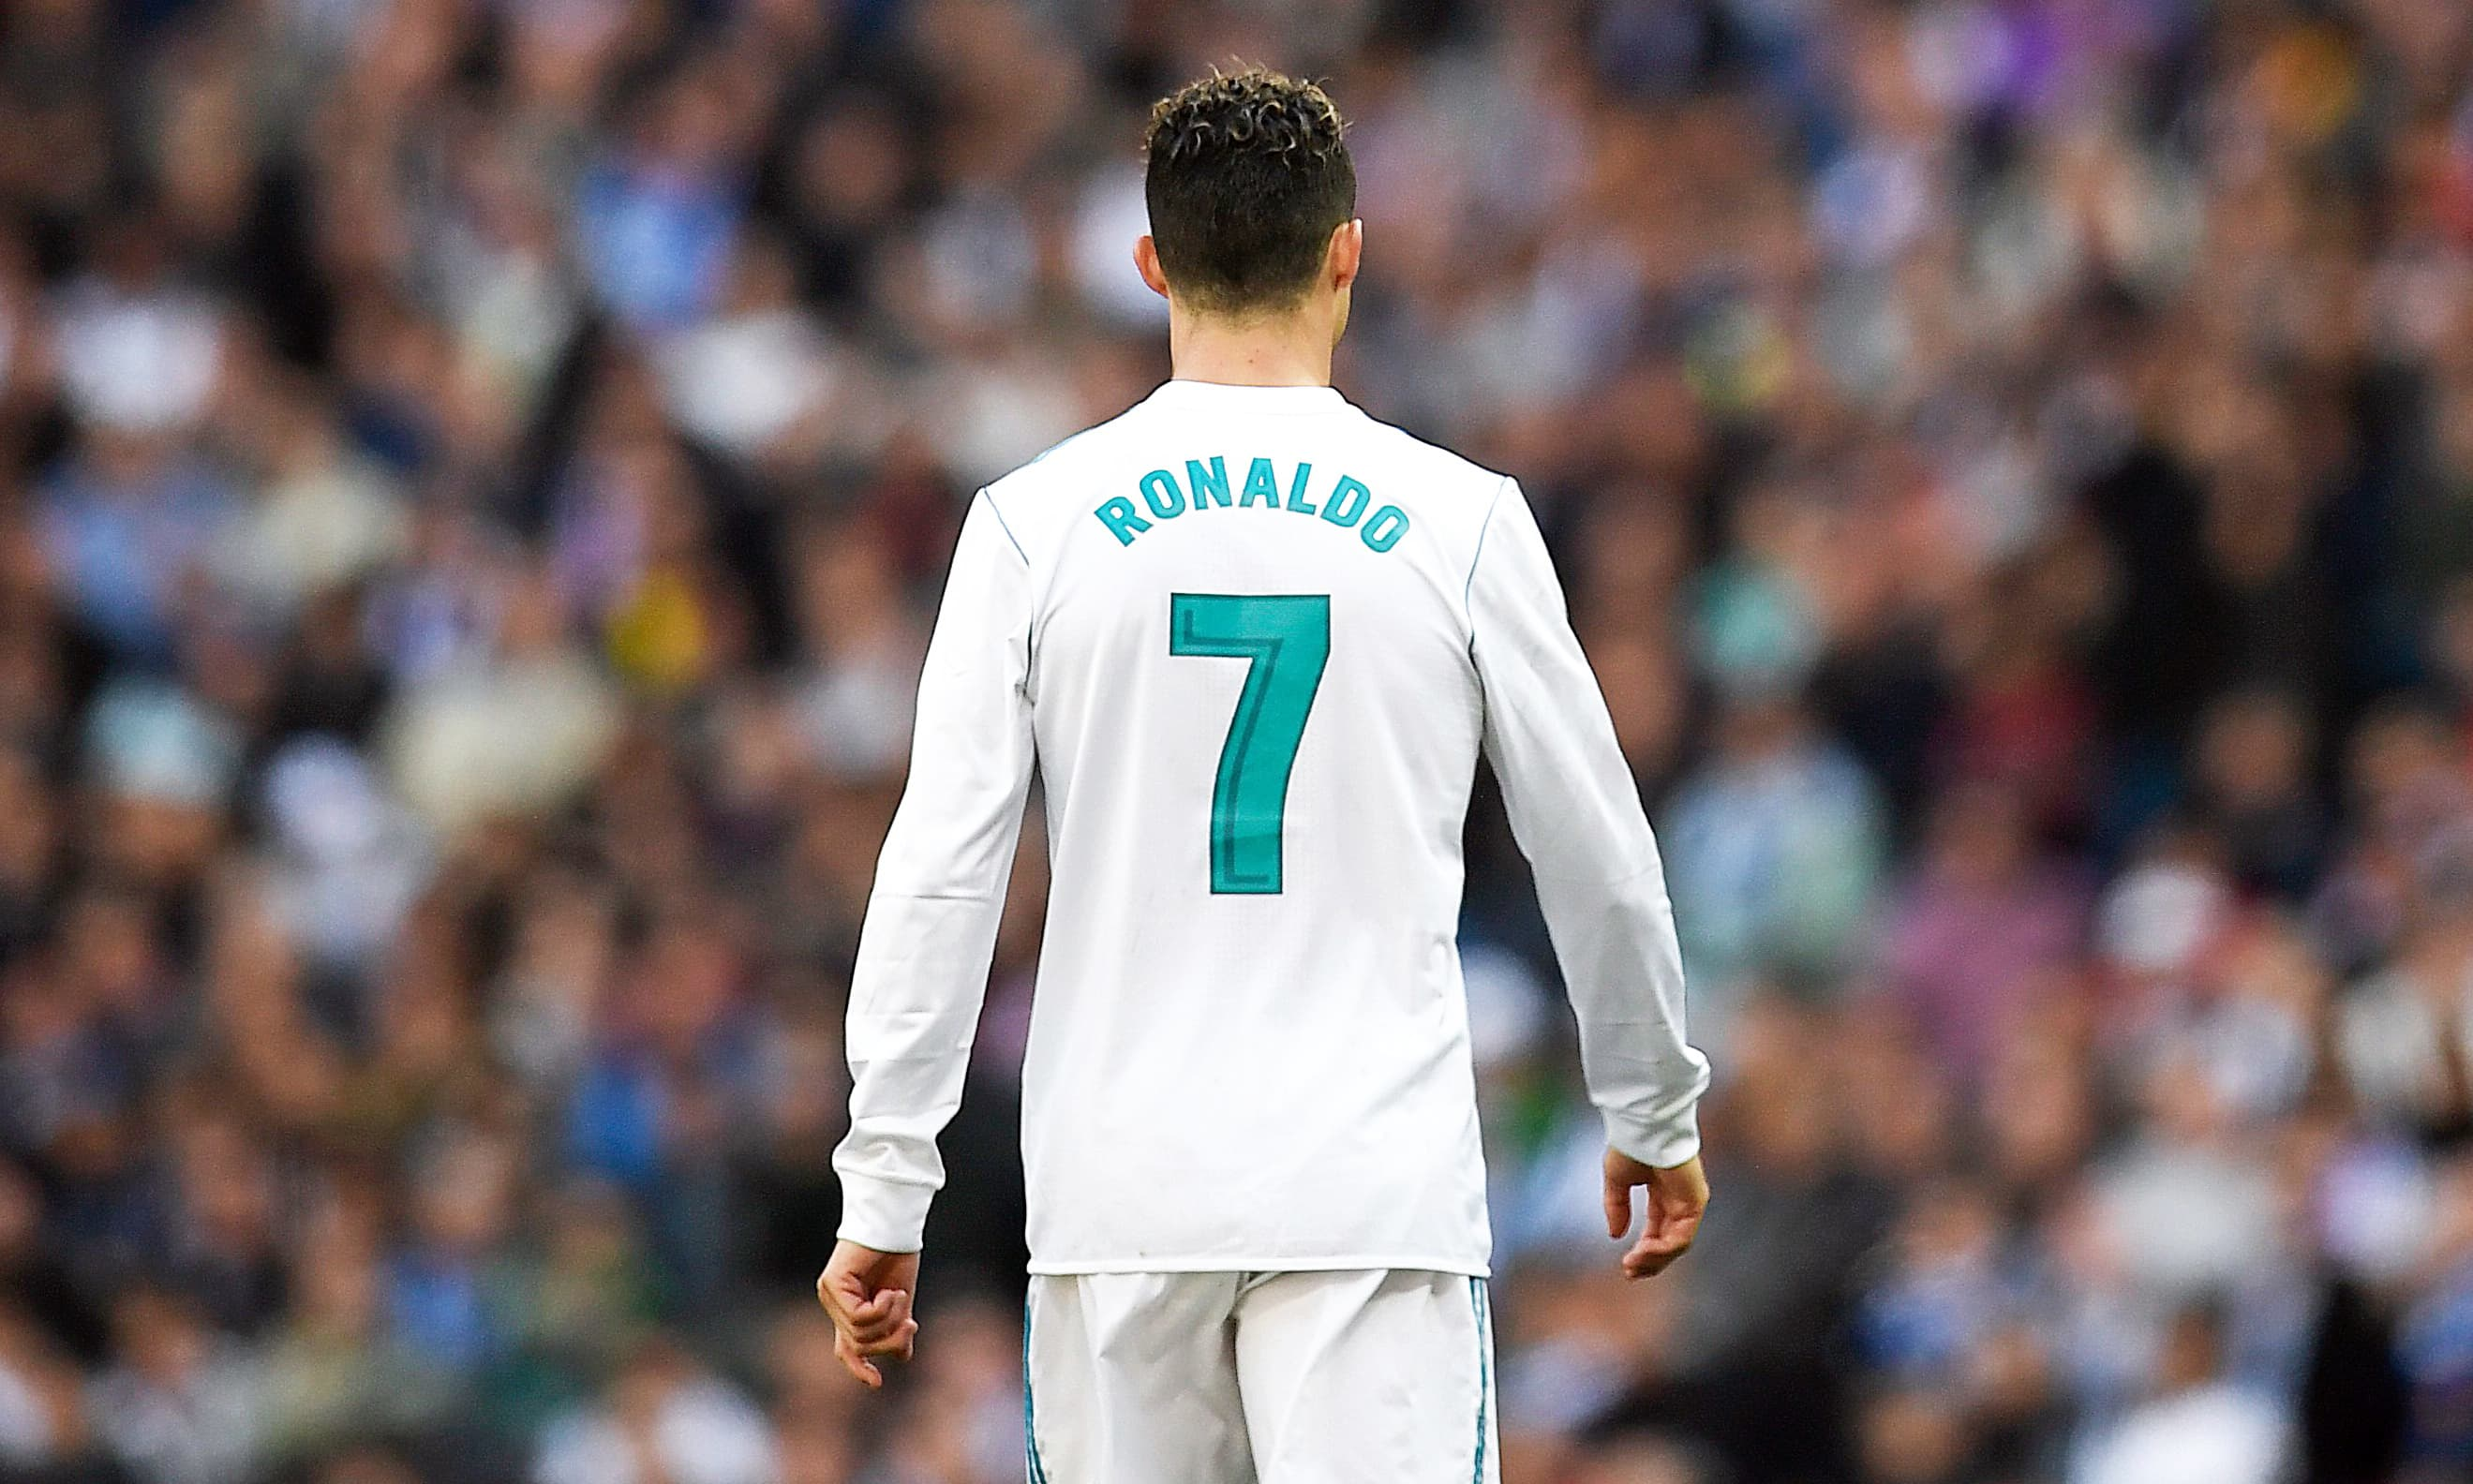 Real Madrid announce Ronaldo's transfer to Juventus